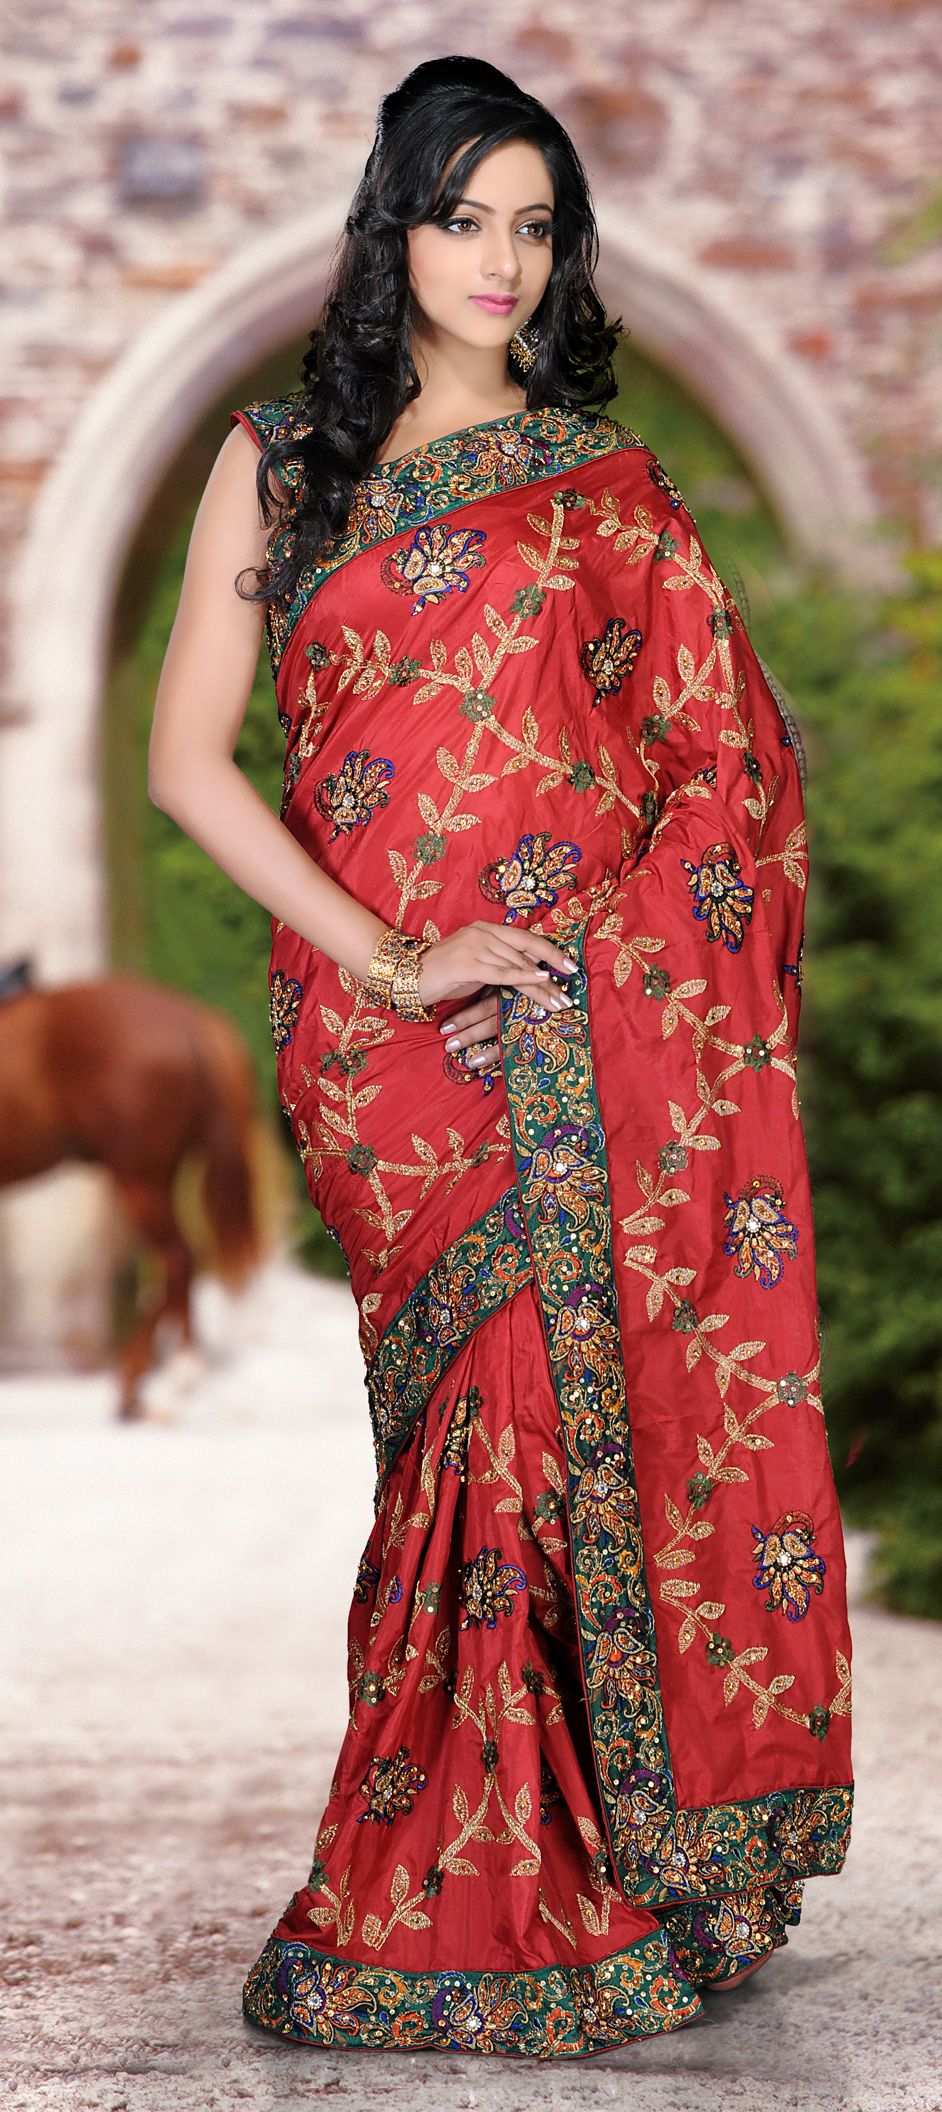 Buy Now : Rs. 6,700 /- http://www.indianweddingsaree.com/product ...